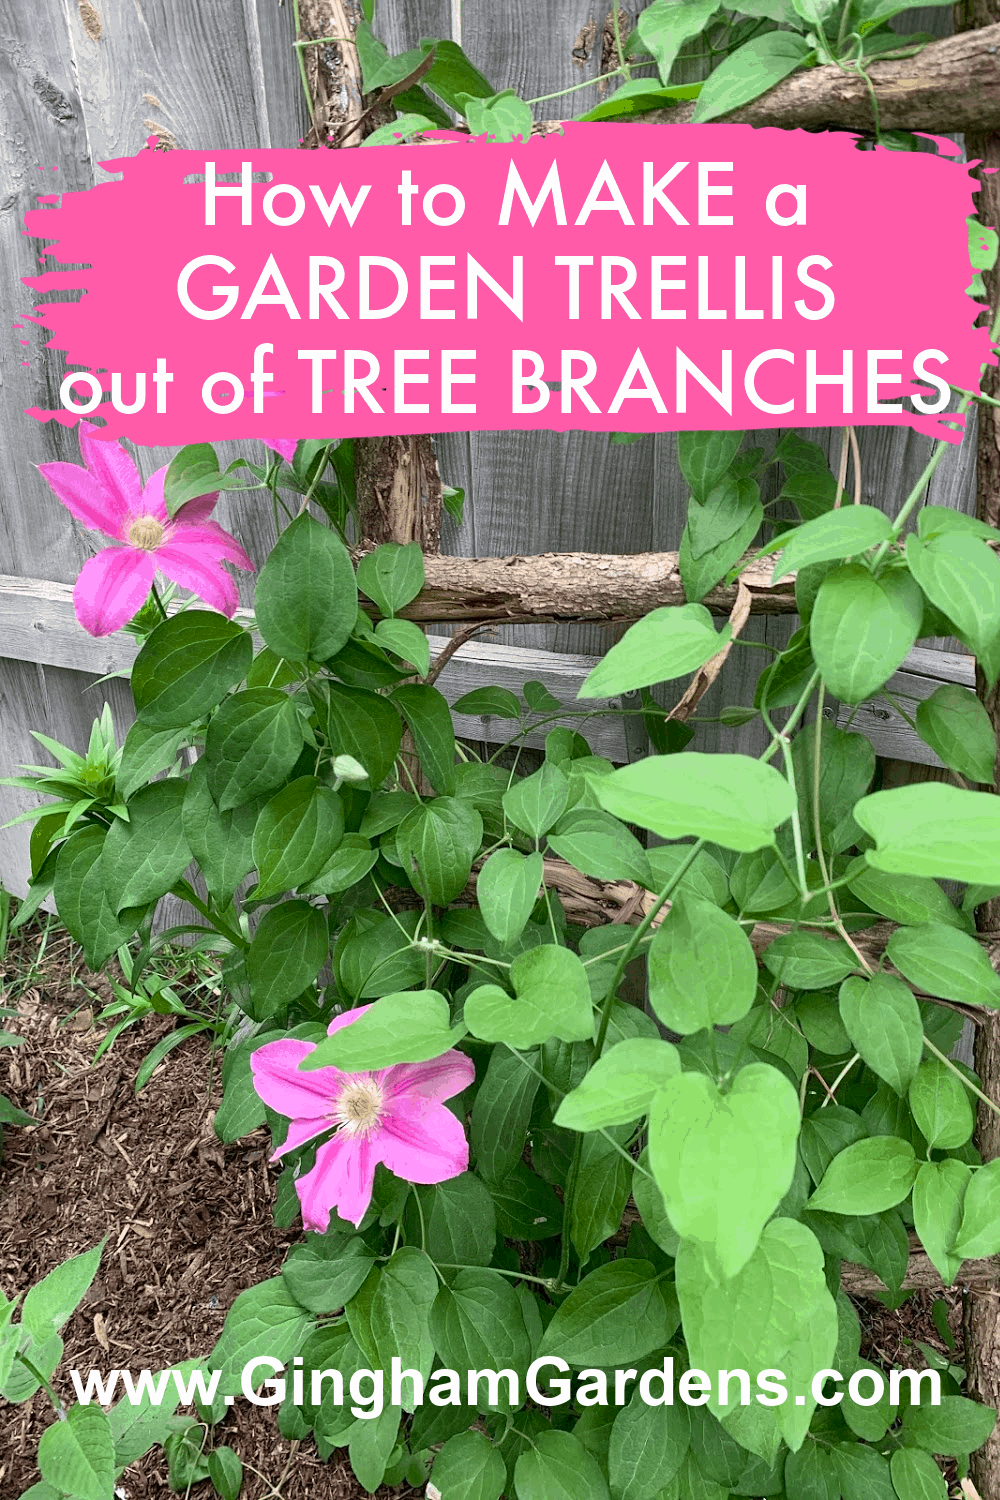 Image of a Garden Trellis with text overlay - How to Make a Garden Trellis out of Tree Branches